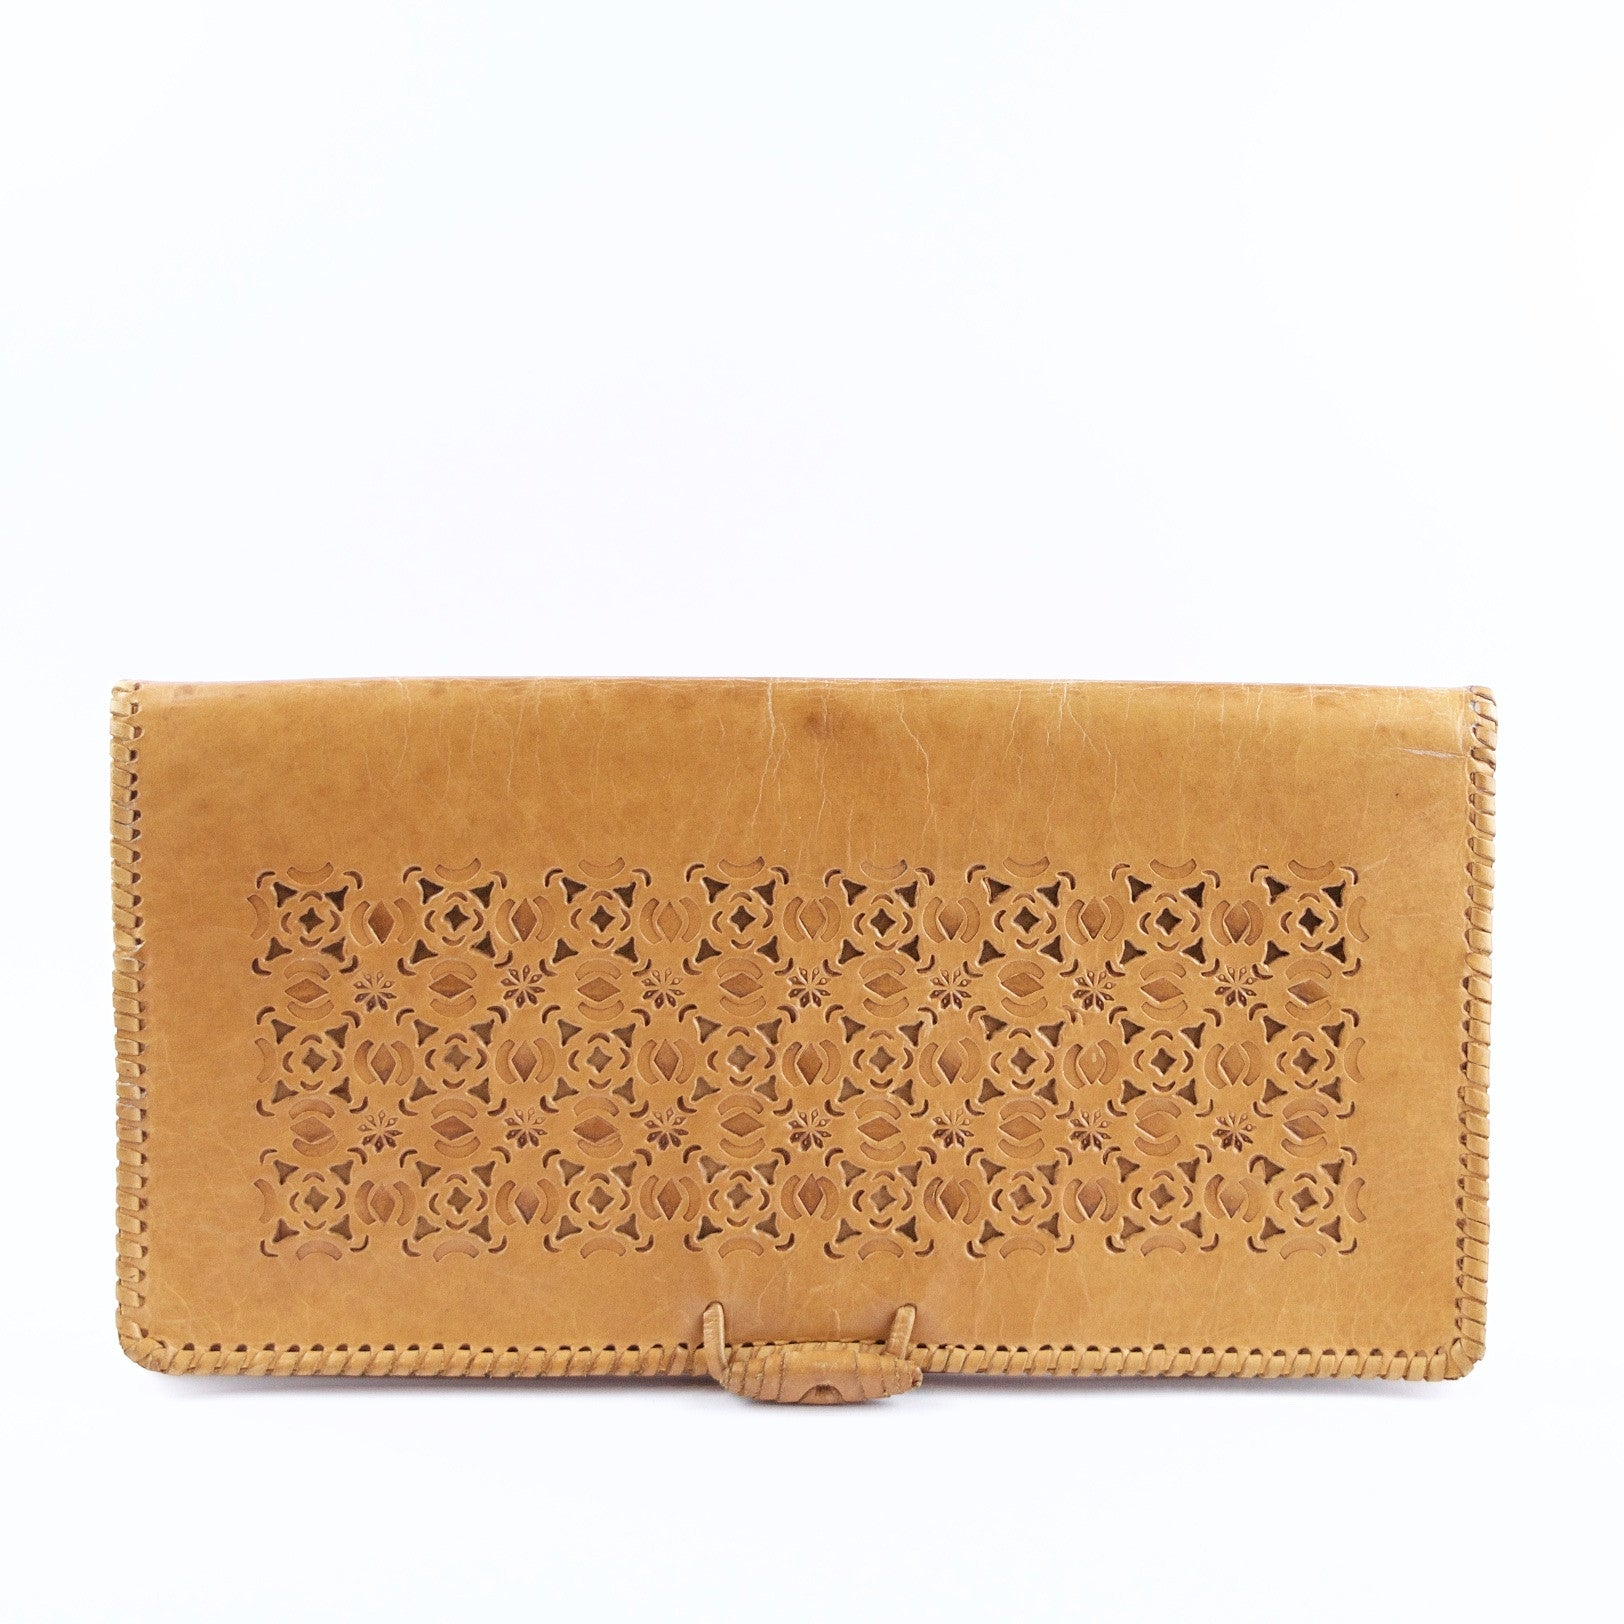 Vintage tan leather casual clutch bag